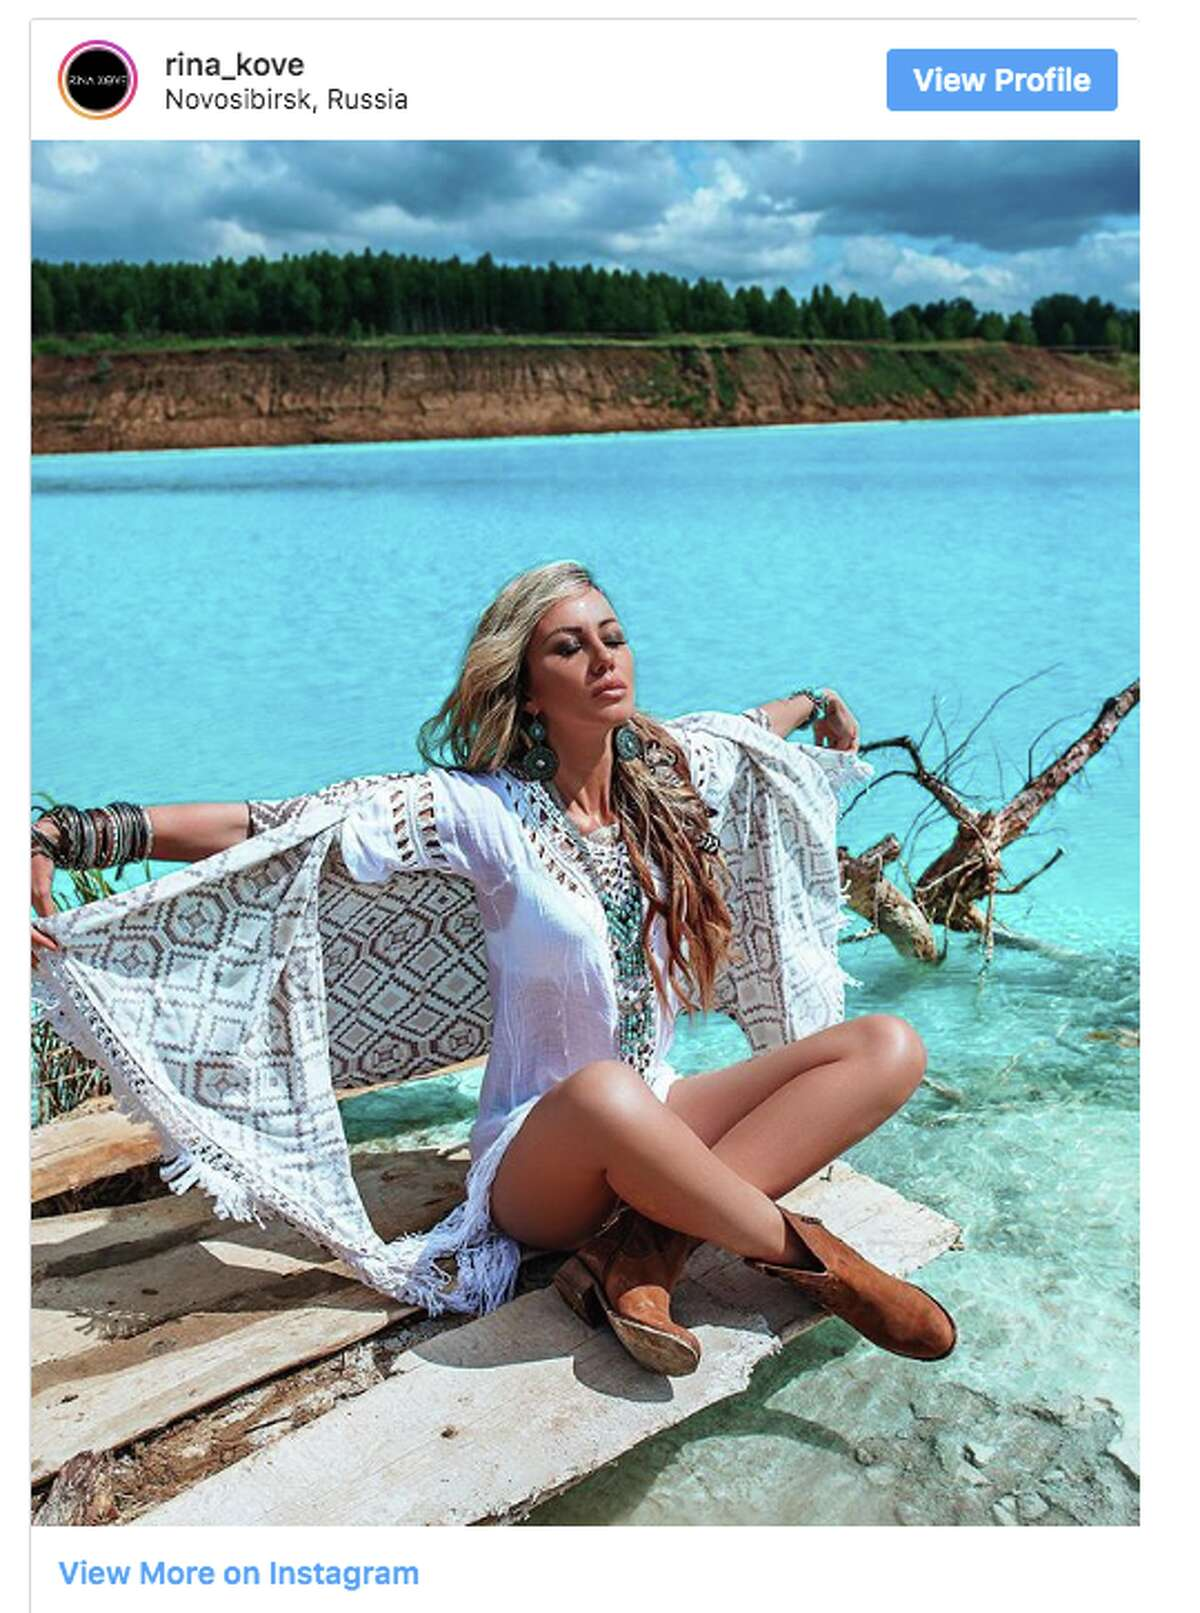 Instagrammers' photos of themselves on the man-made lake near Novosibirsk, Siberia, don't always reveal the cause of its vibrant color. The lake serves as an